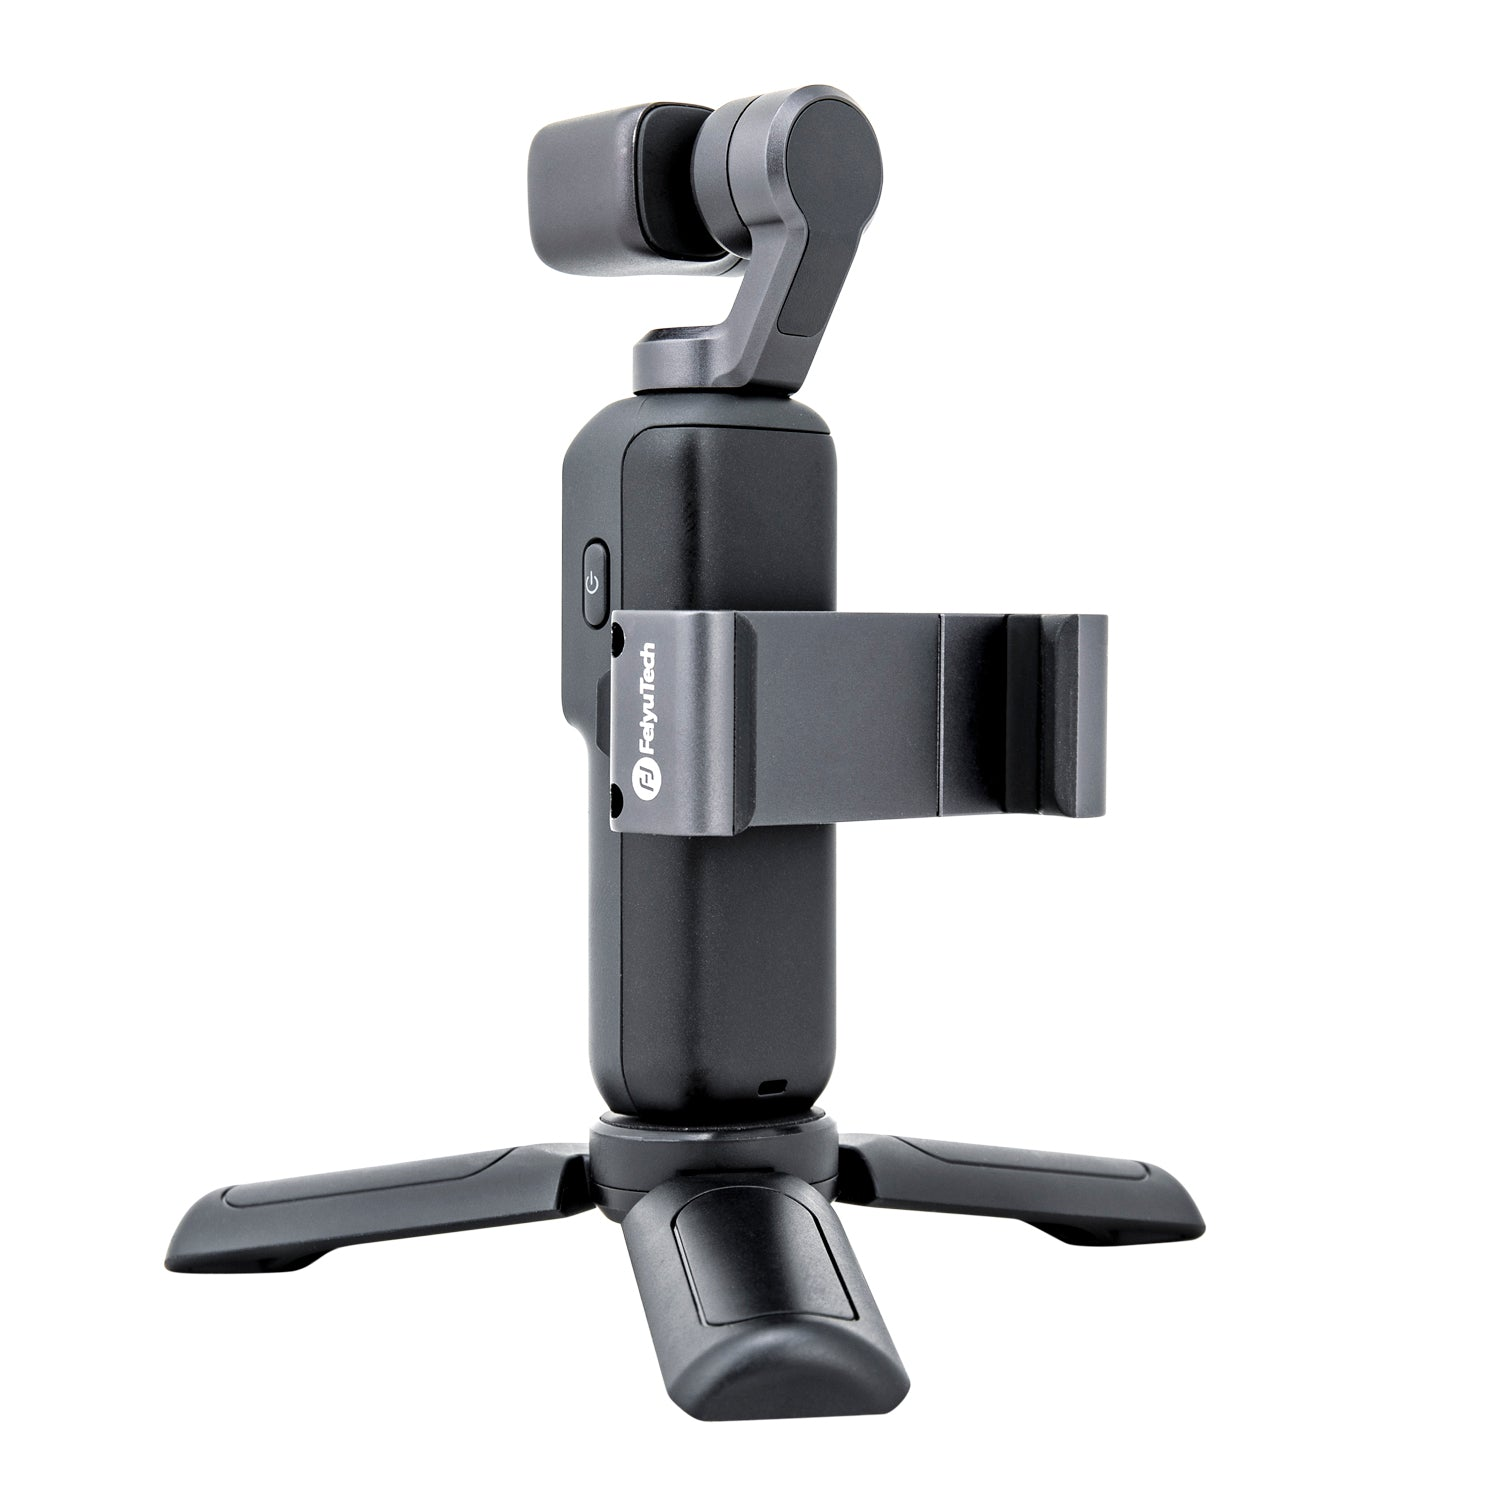 Feiyu pocket 4K 6-axis Stabilized Handheld Camera Smartphone Holder Overview